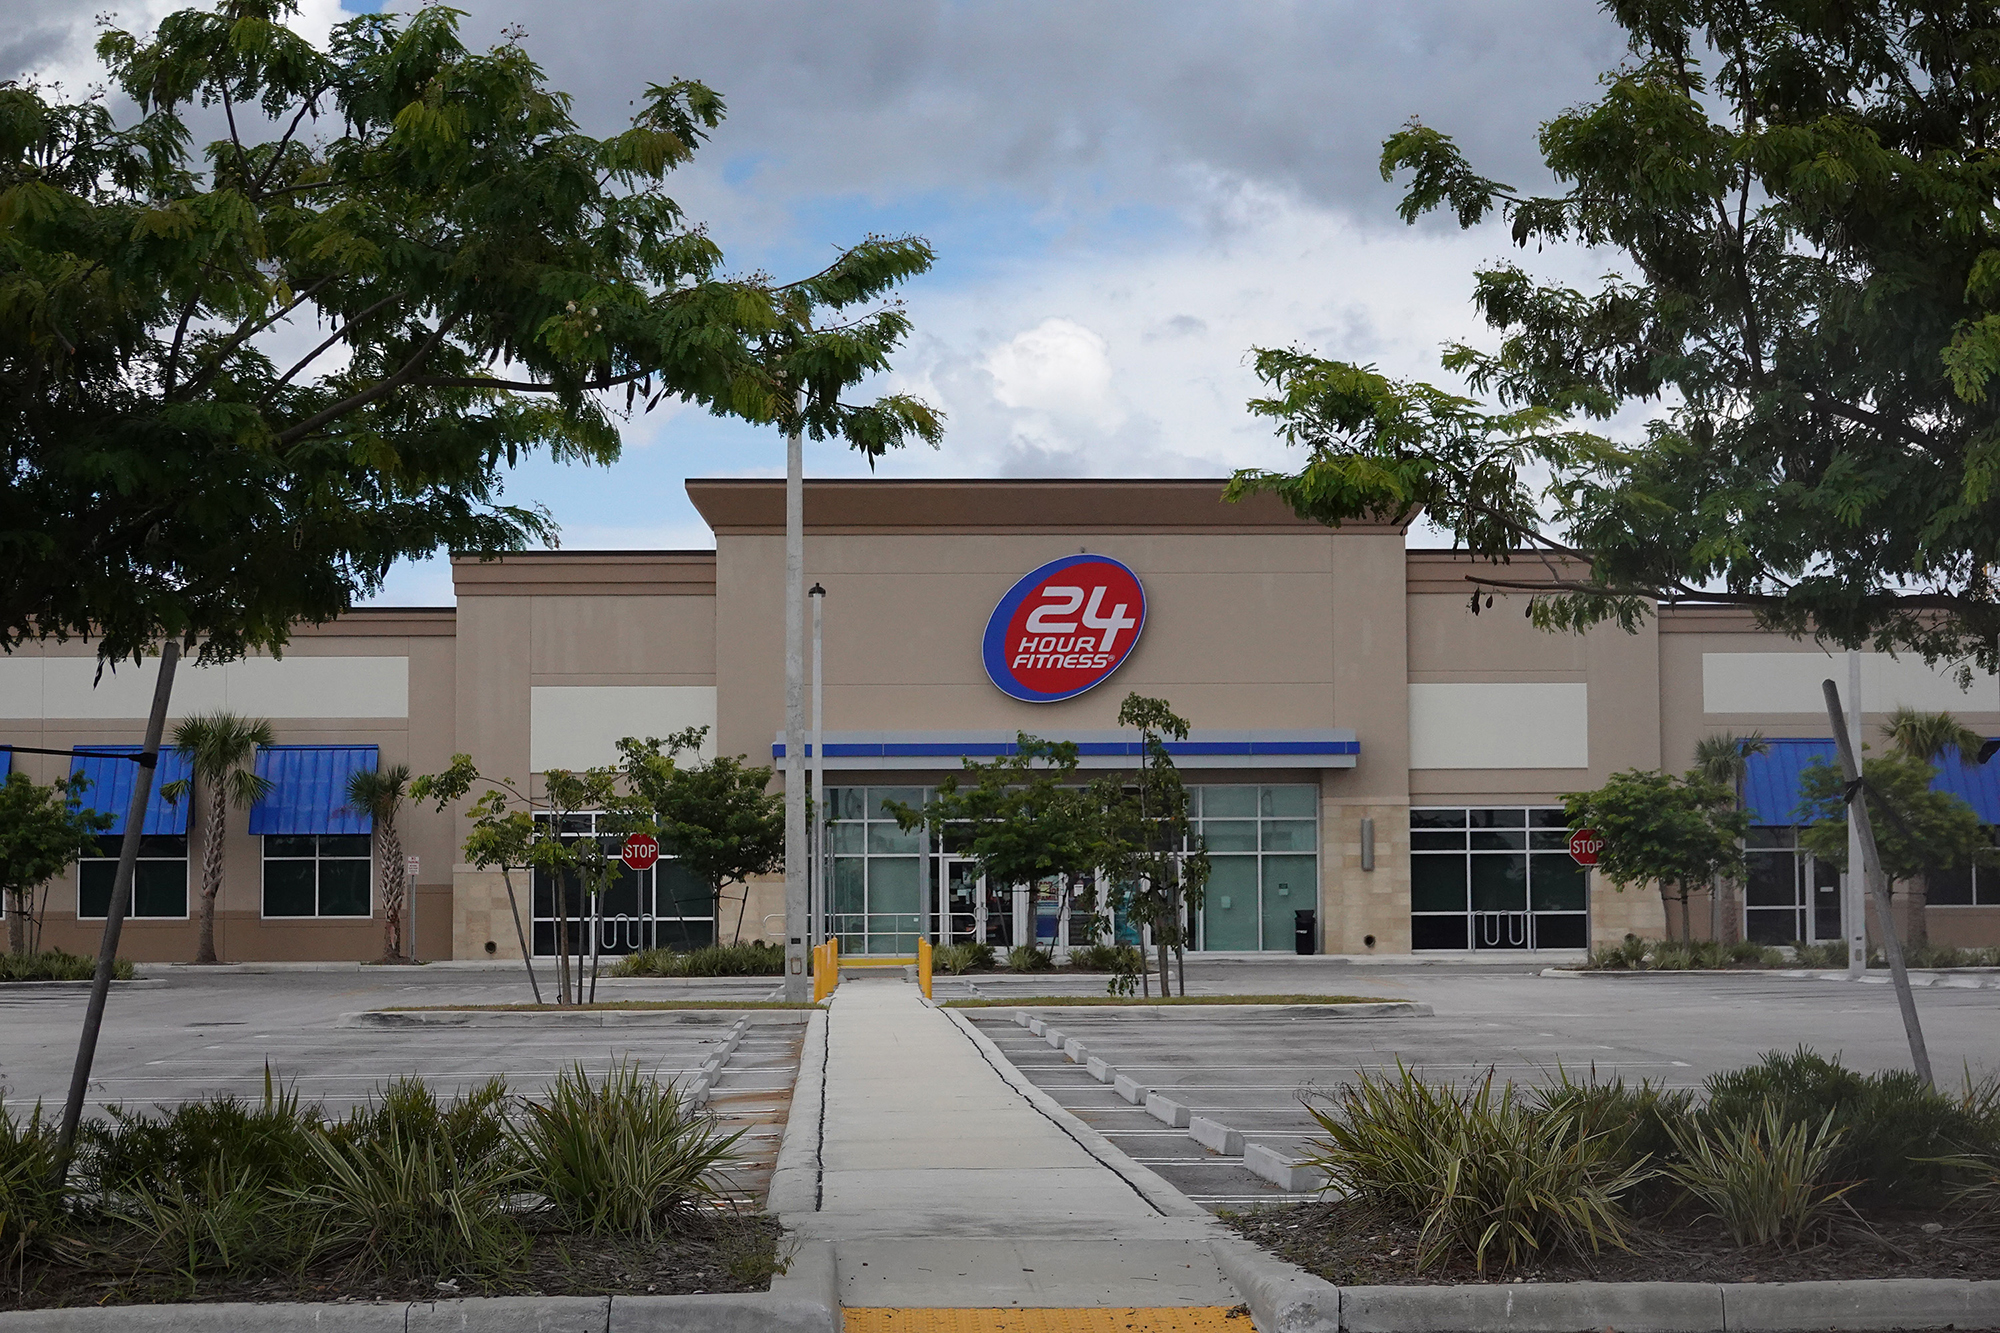 A 24 Hour Fitness gym is seen on June 15, 2020 in Miami, Florida.